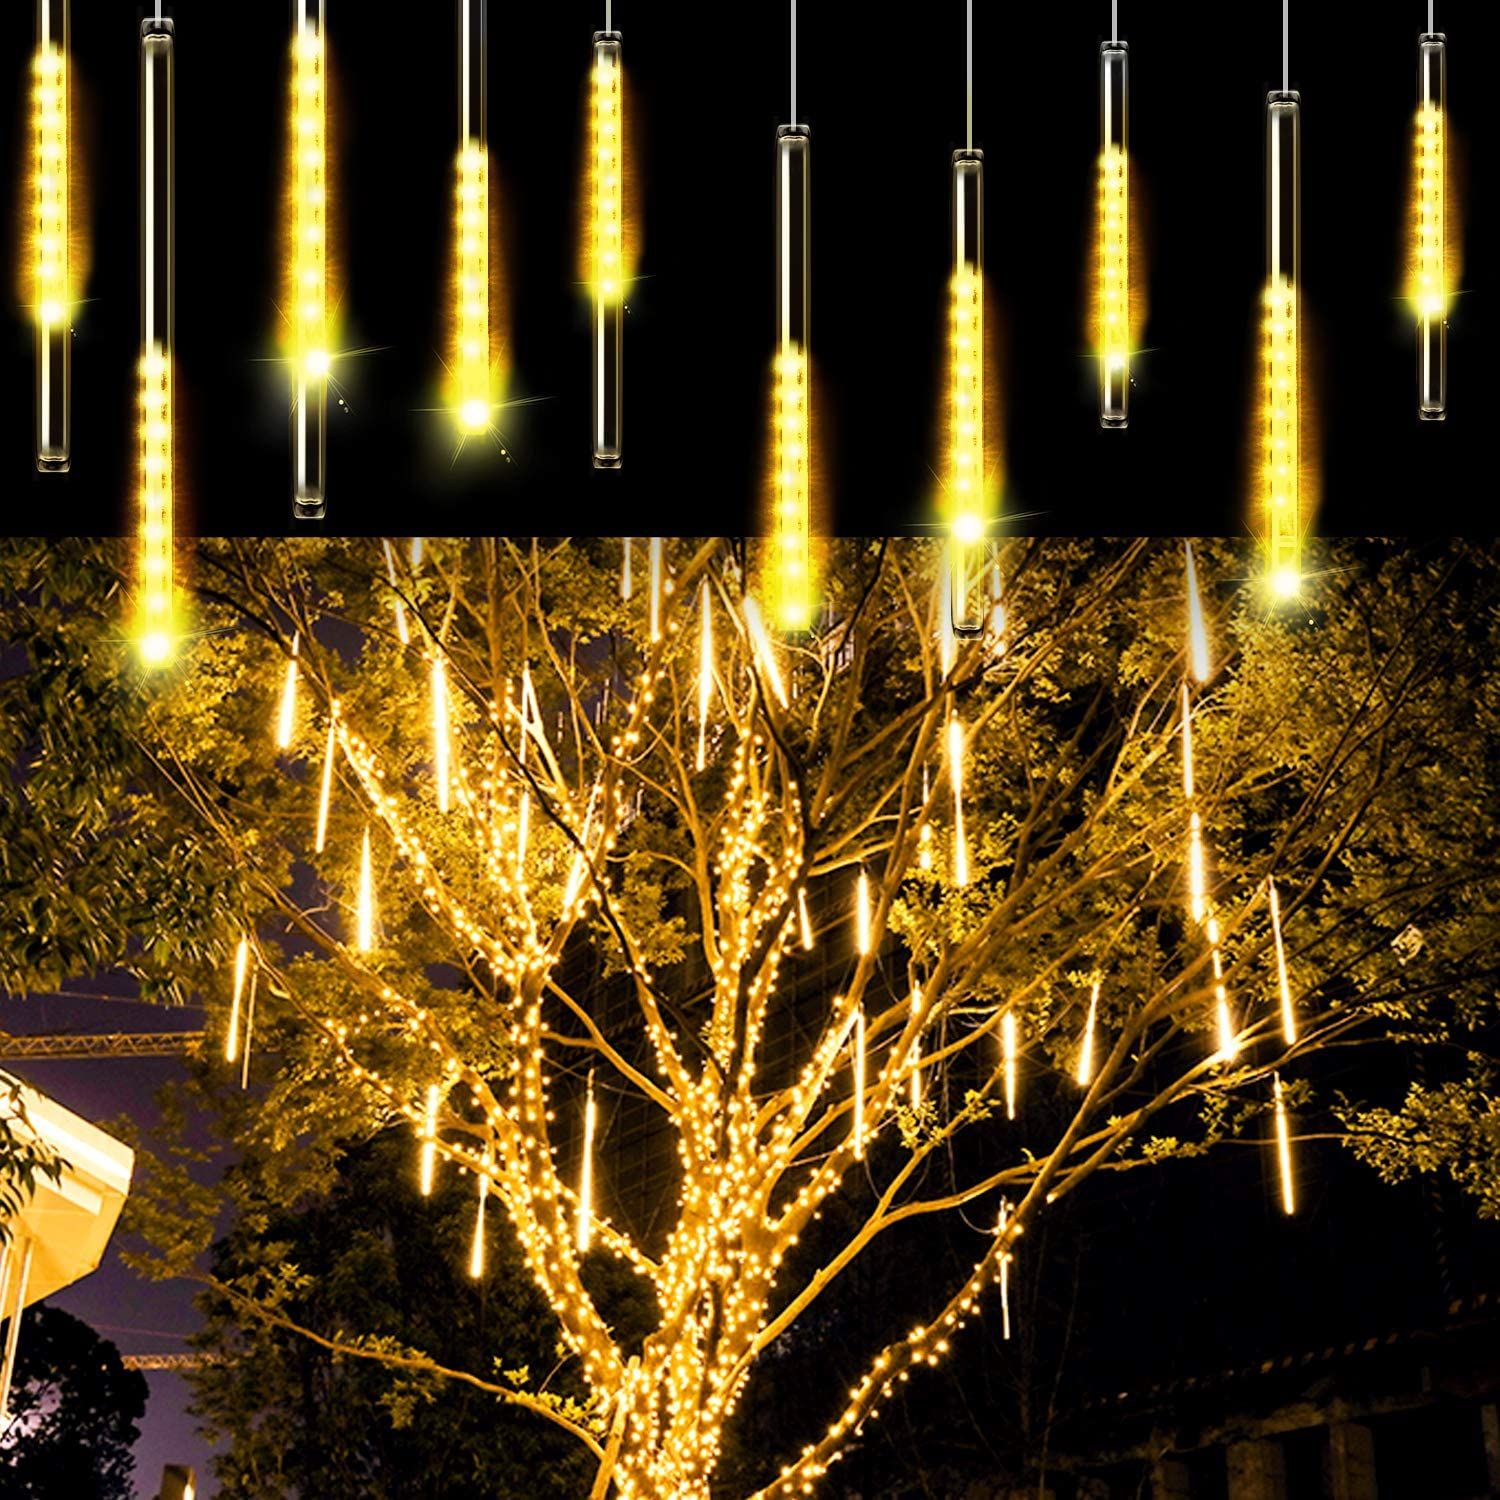 Aluan Christmas Lights Meteor Shower Rain Lights 10 Tube 240 LED Waterproof Plug in Falling Rain Fairy String Lights for Halloween Christmas Holiday Party Home Patio Outdoor Decoration, Warm White